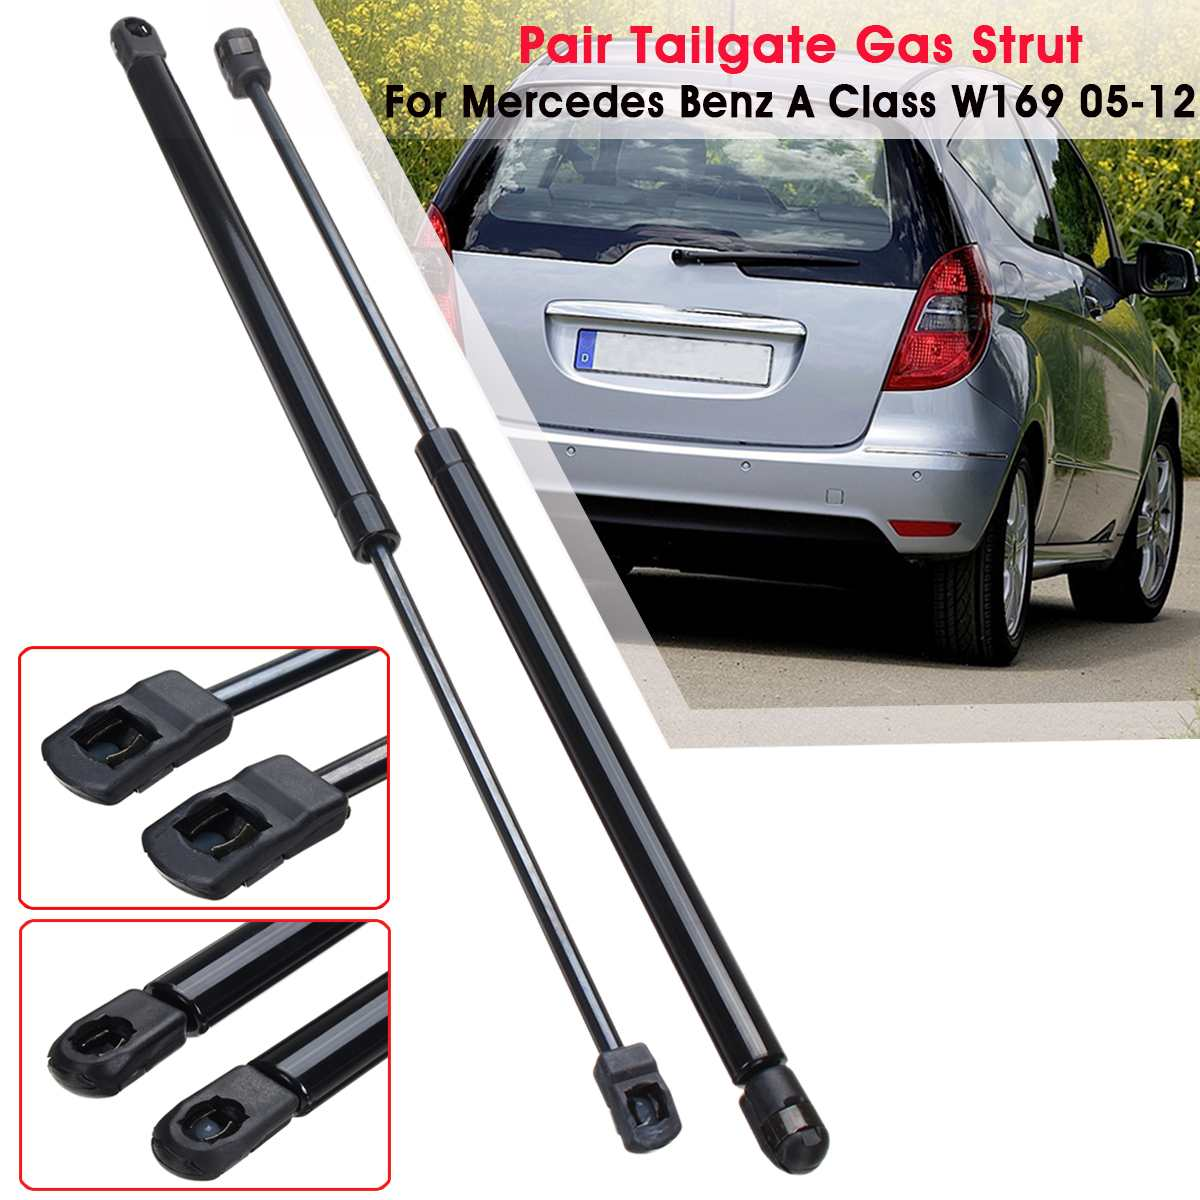 MERCEDES VIANO W639 2003-2010 2X REAR TAILGATE WITHOUT GLASS GAS STRUTS PAIR